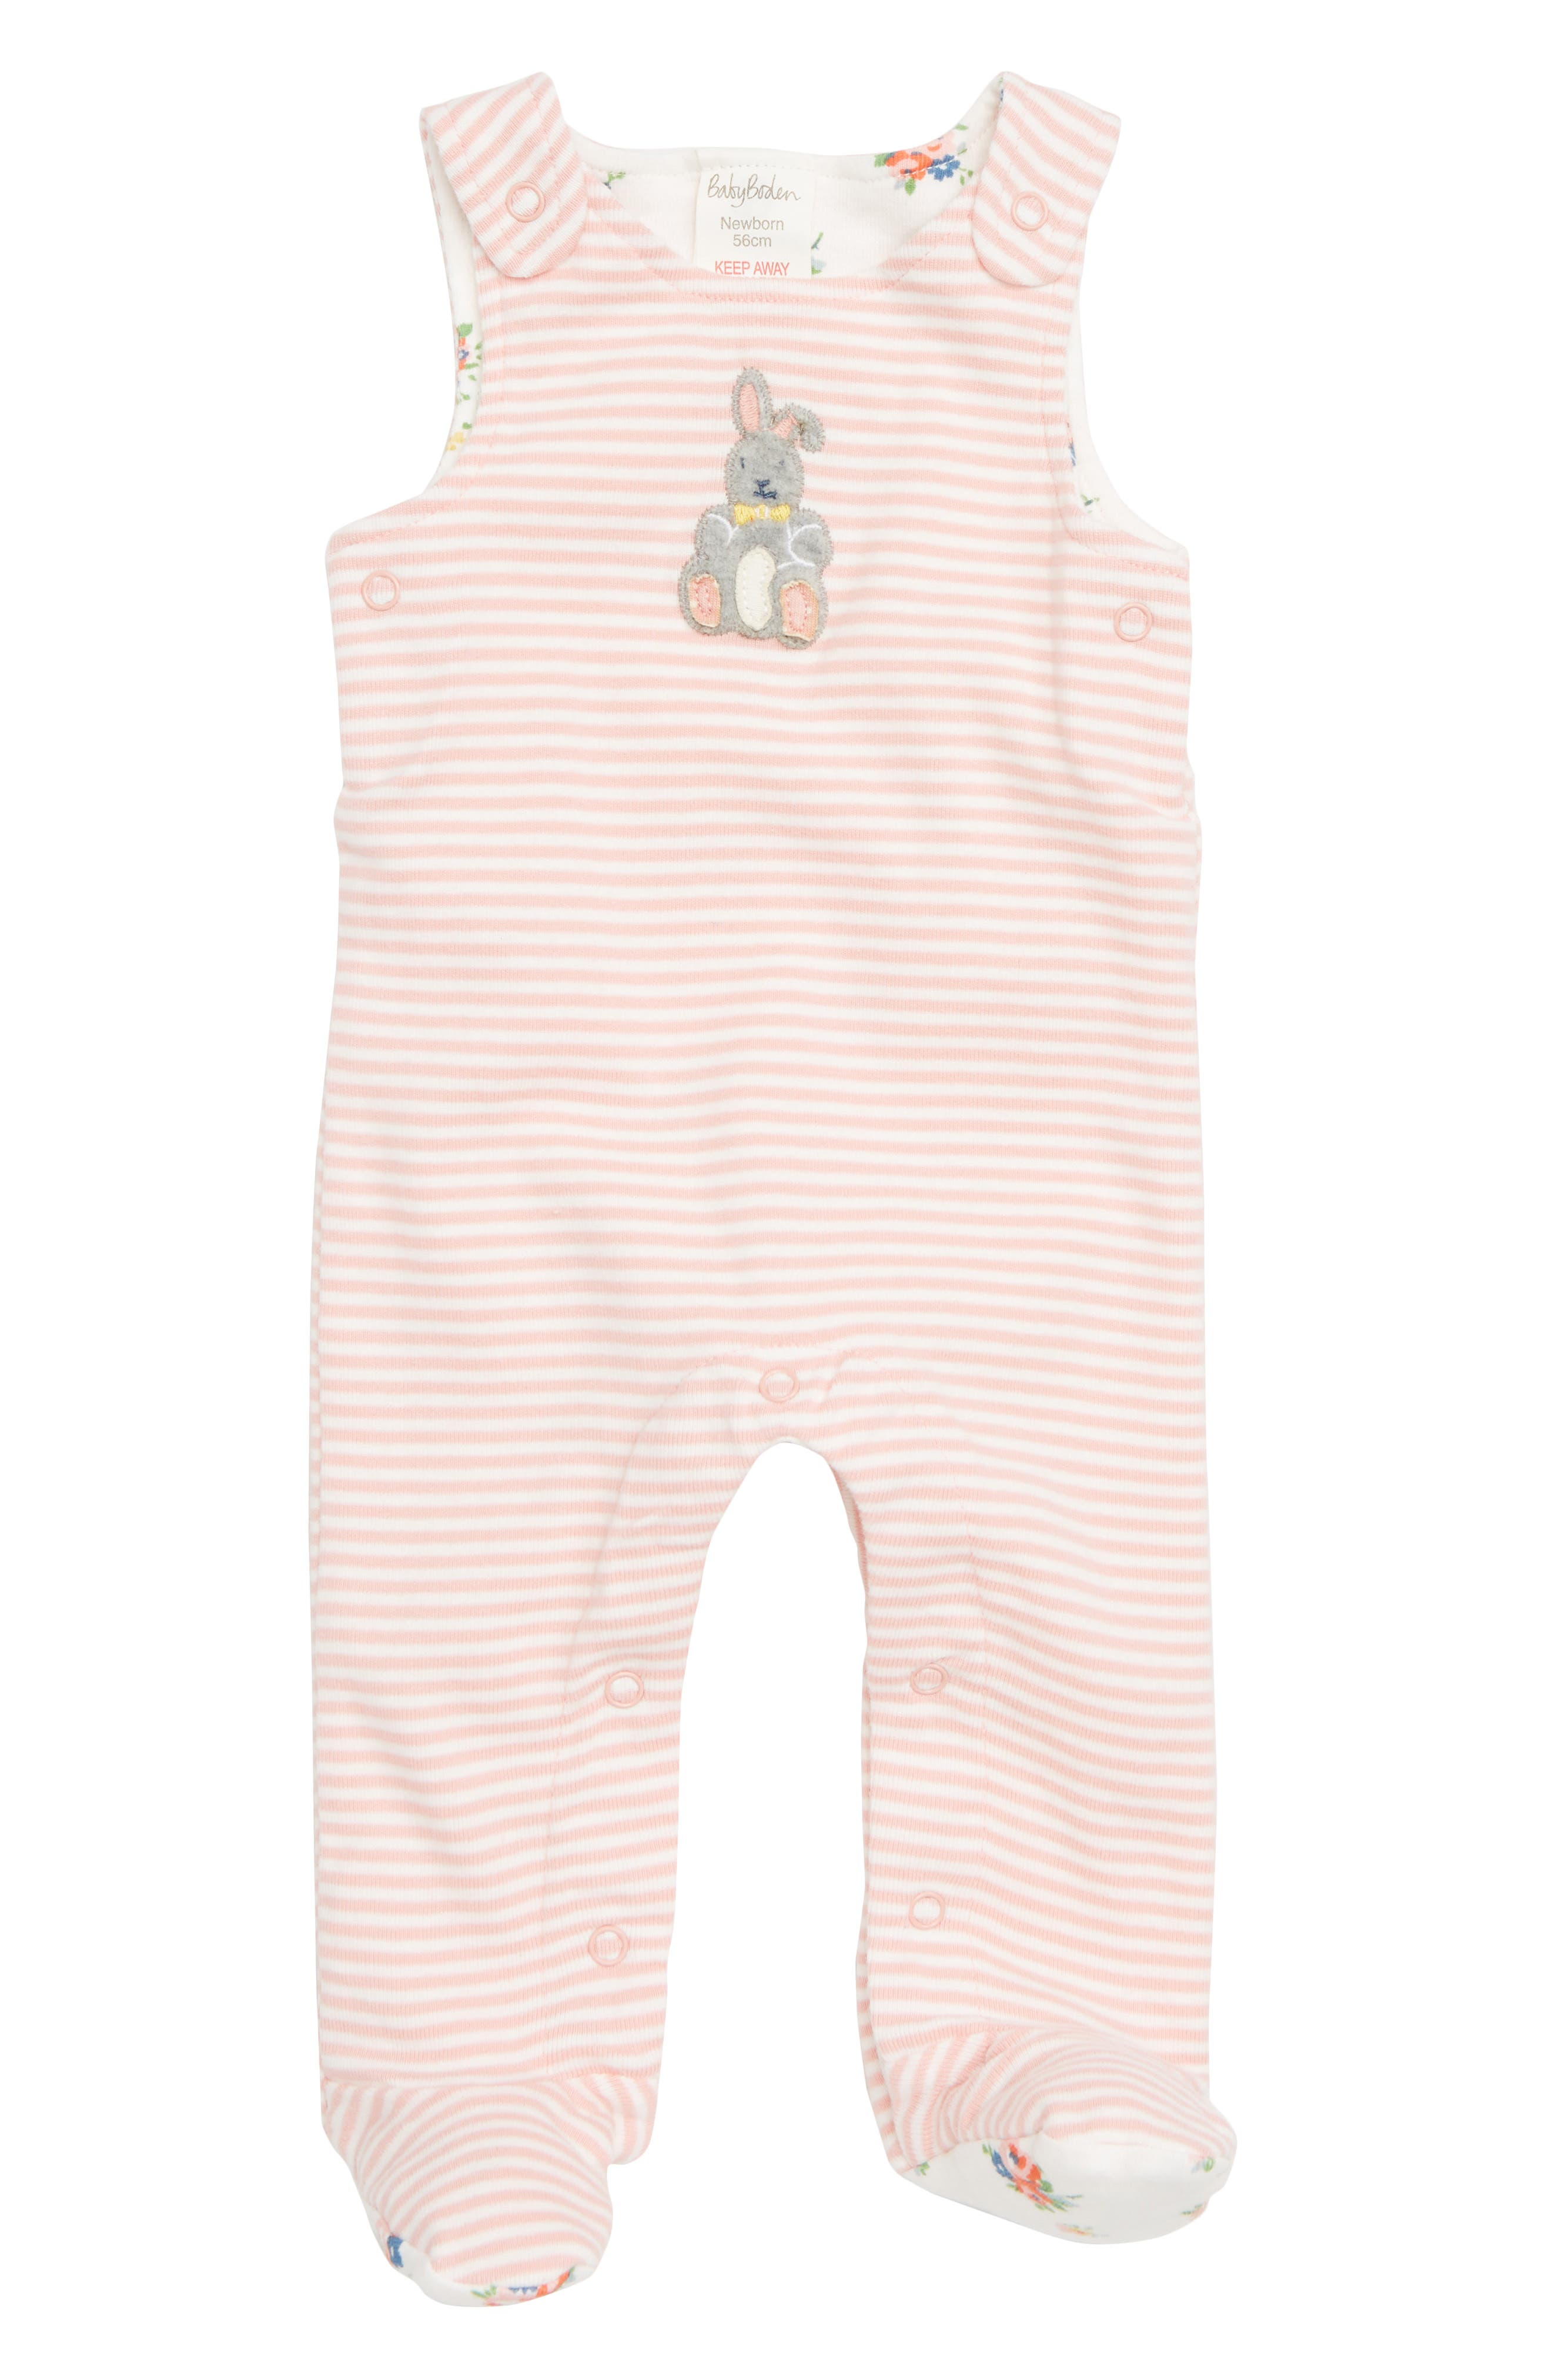 Organic Cotton Dunagree Footie,                         Main,                         color, SHELL PINK/ IVORY BUNNY